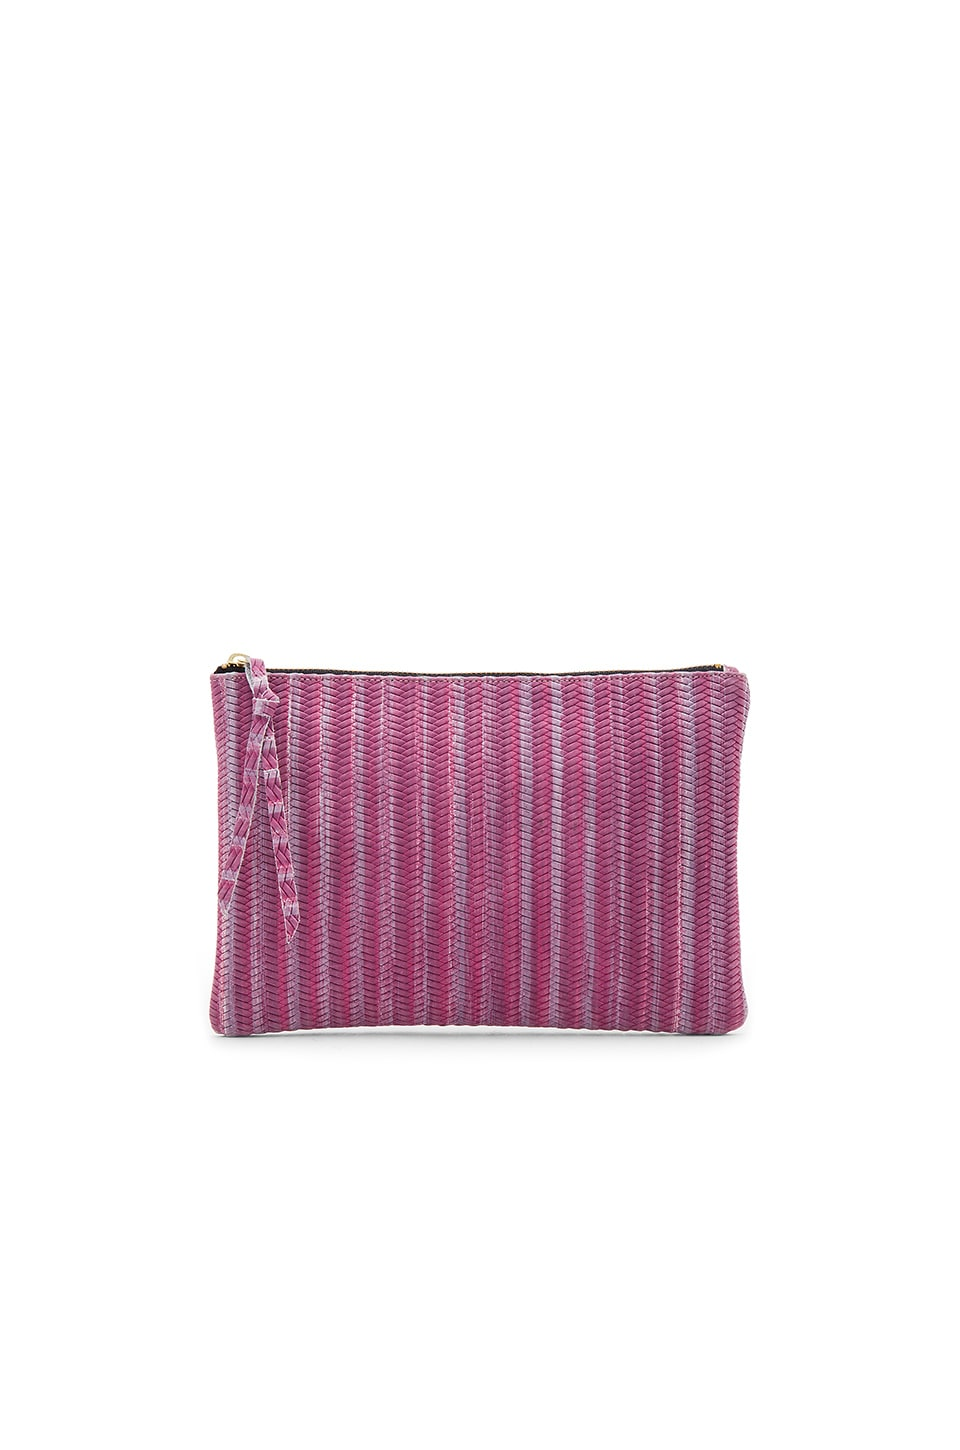 Queenie Clutch by Oliveve